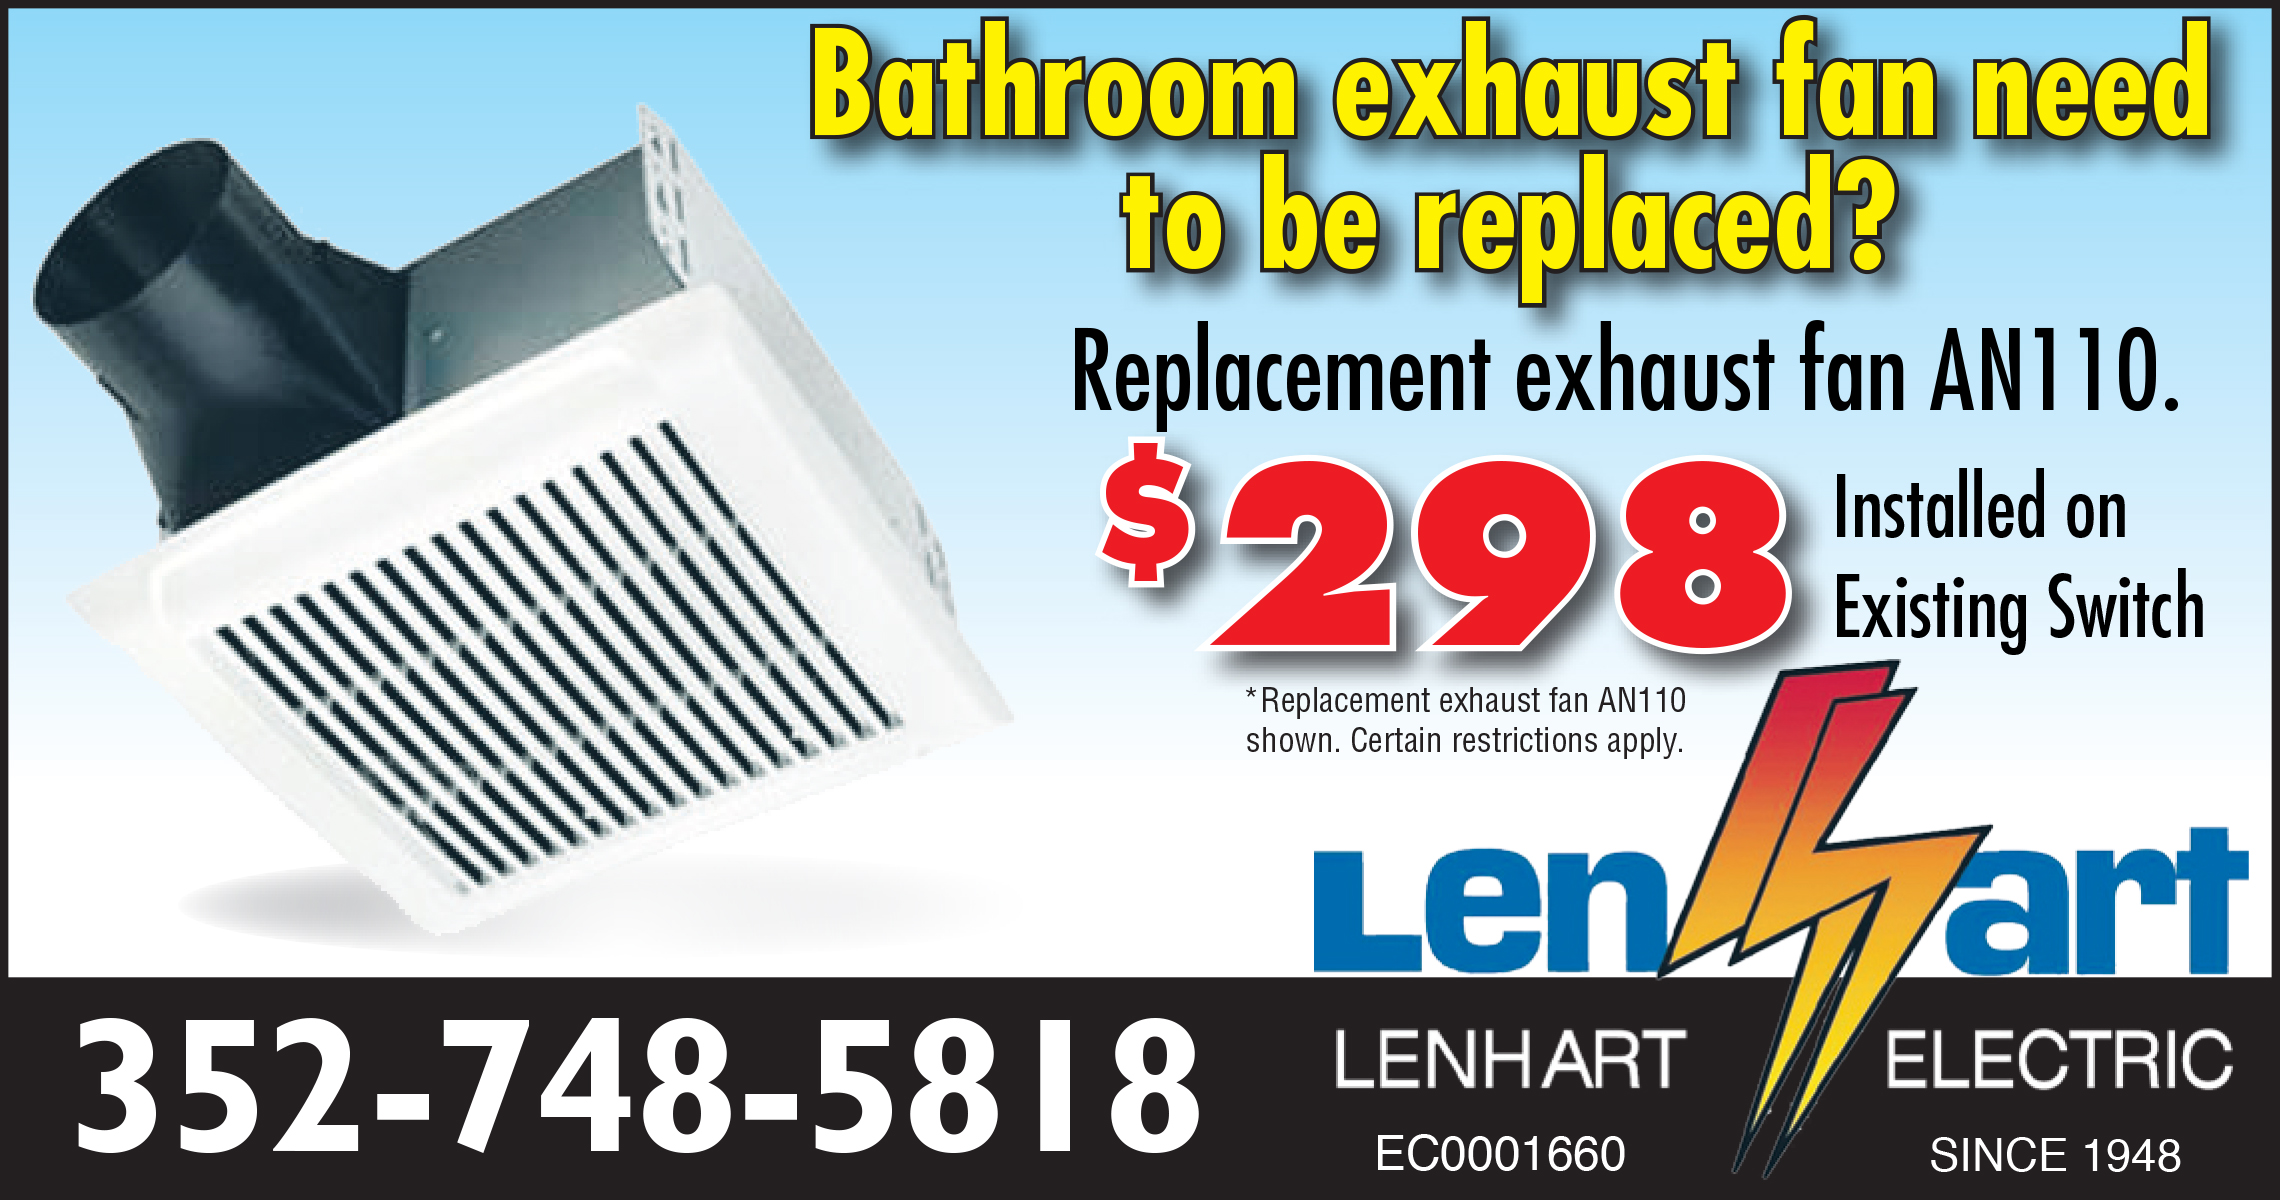 Commercial bathroom exhaust fan